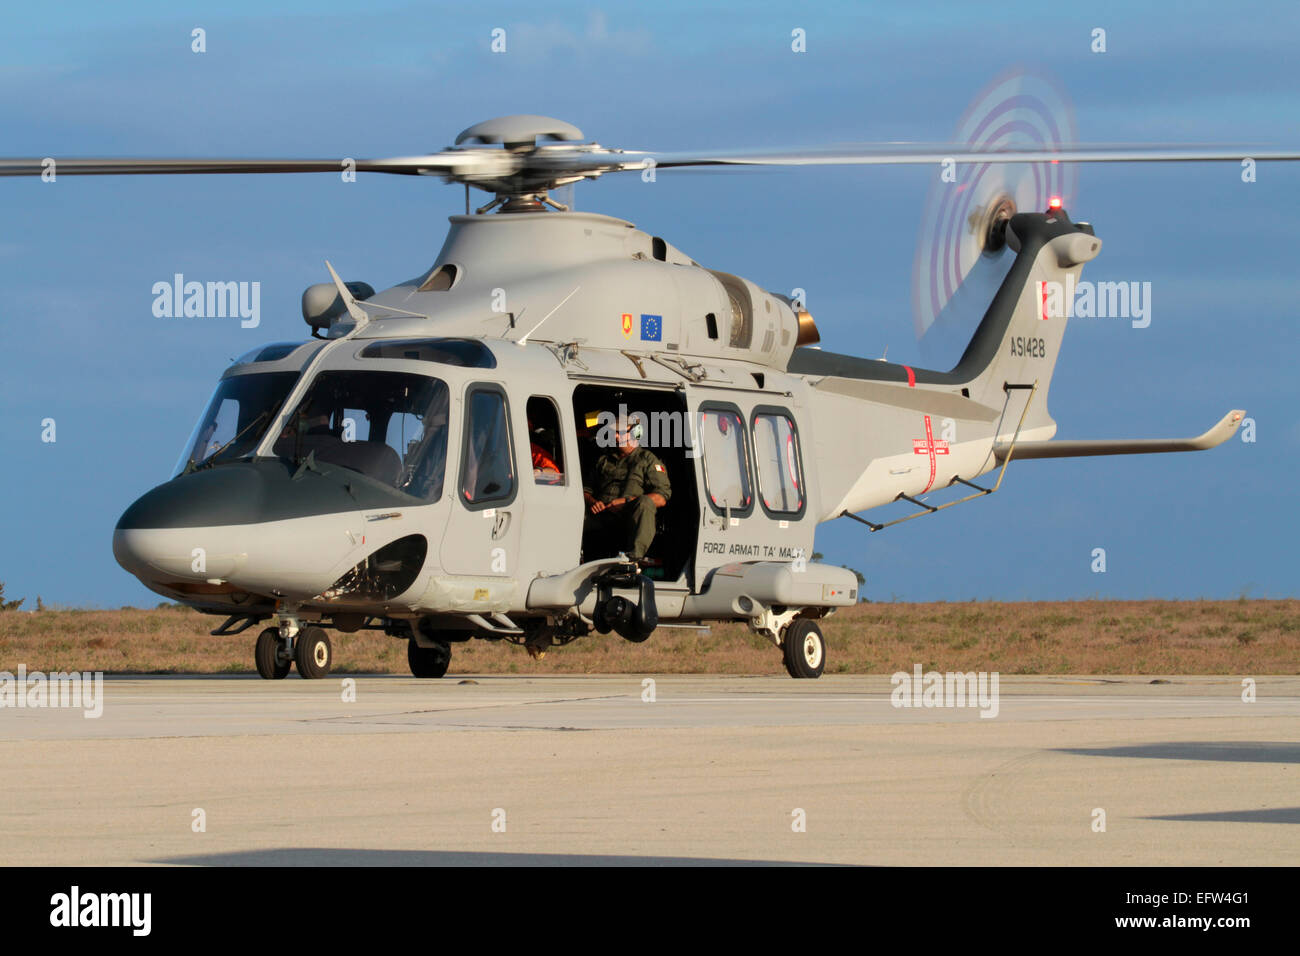 AgustaWestland AW139 military helicopter of the Armed Forces of Malta - Stock Image